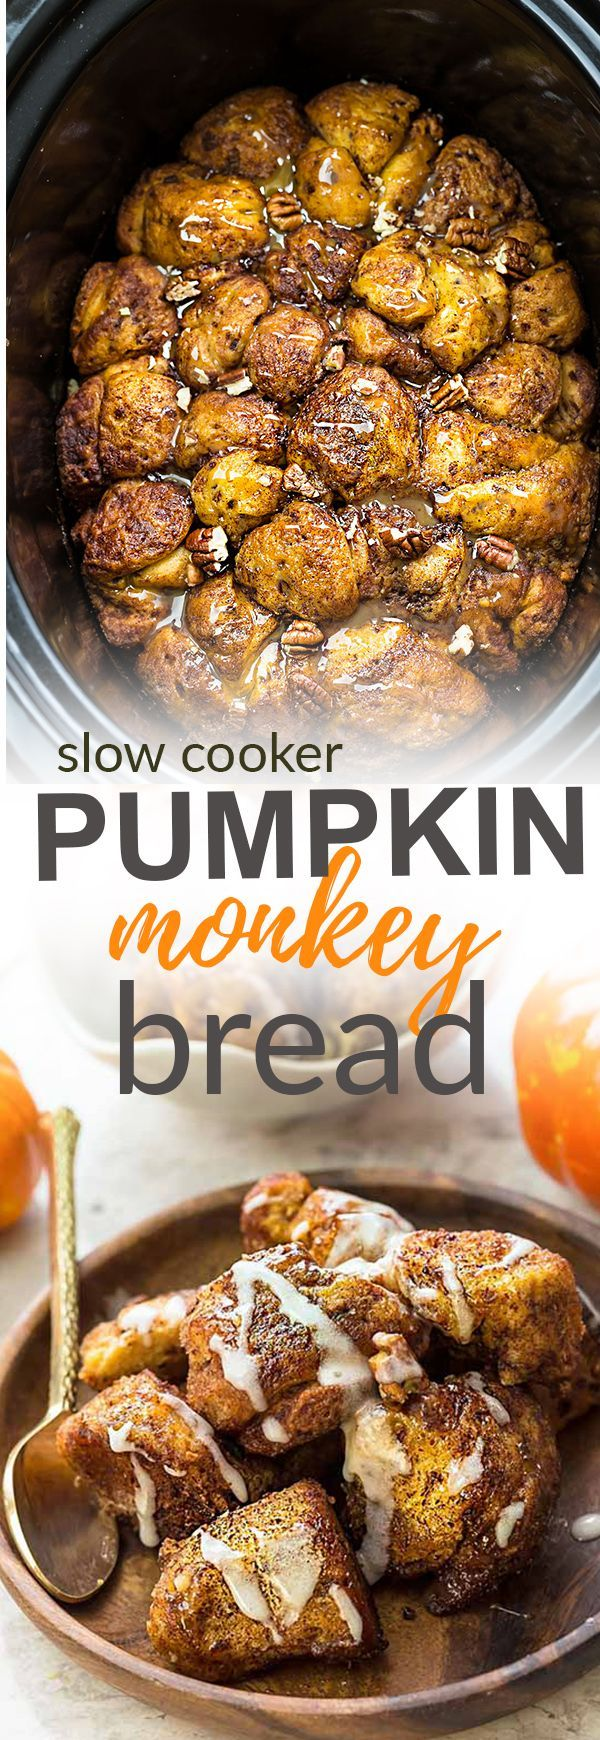 This recipe for Slow Cooker Pumpkin Monkey Bread makes the perfect easy breakfast or brunch. Best of all, it's so easy to make in your crock-pot with refrigerated cinnamon roll dough and it's full of cozy fall spices and a pumpkin cheesecake filling. So d